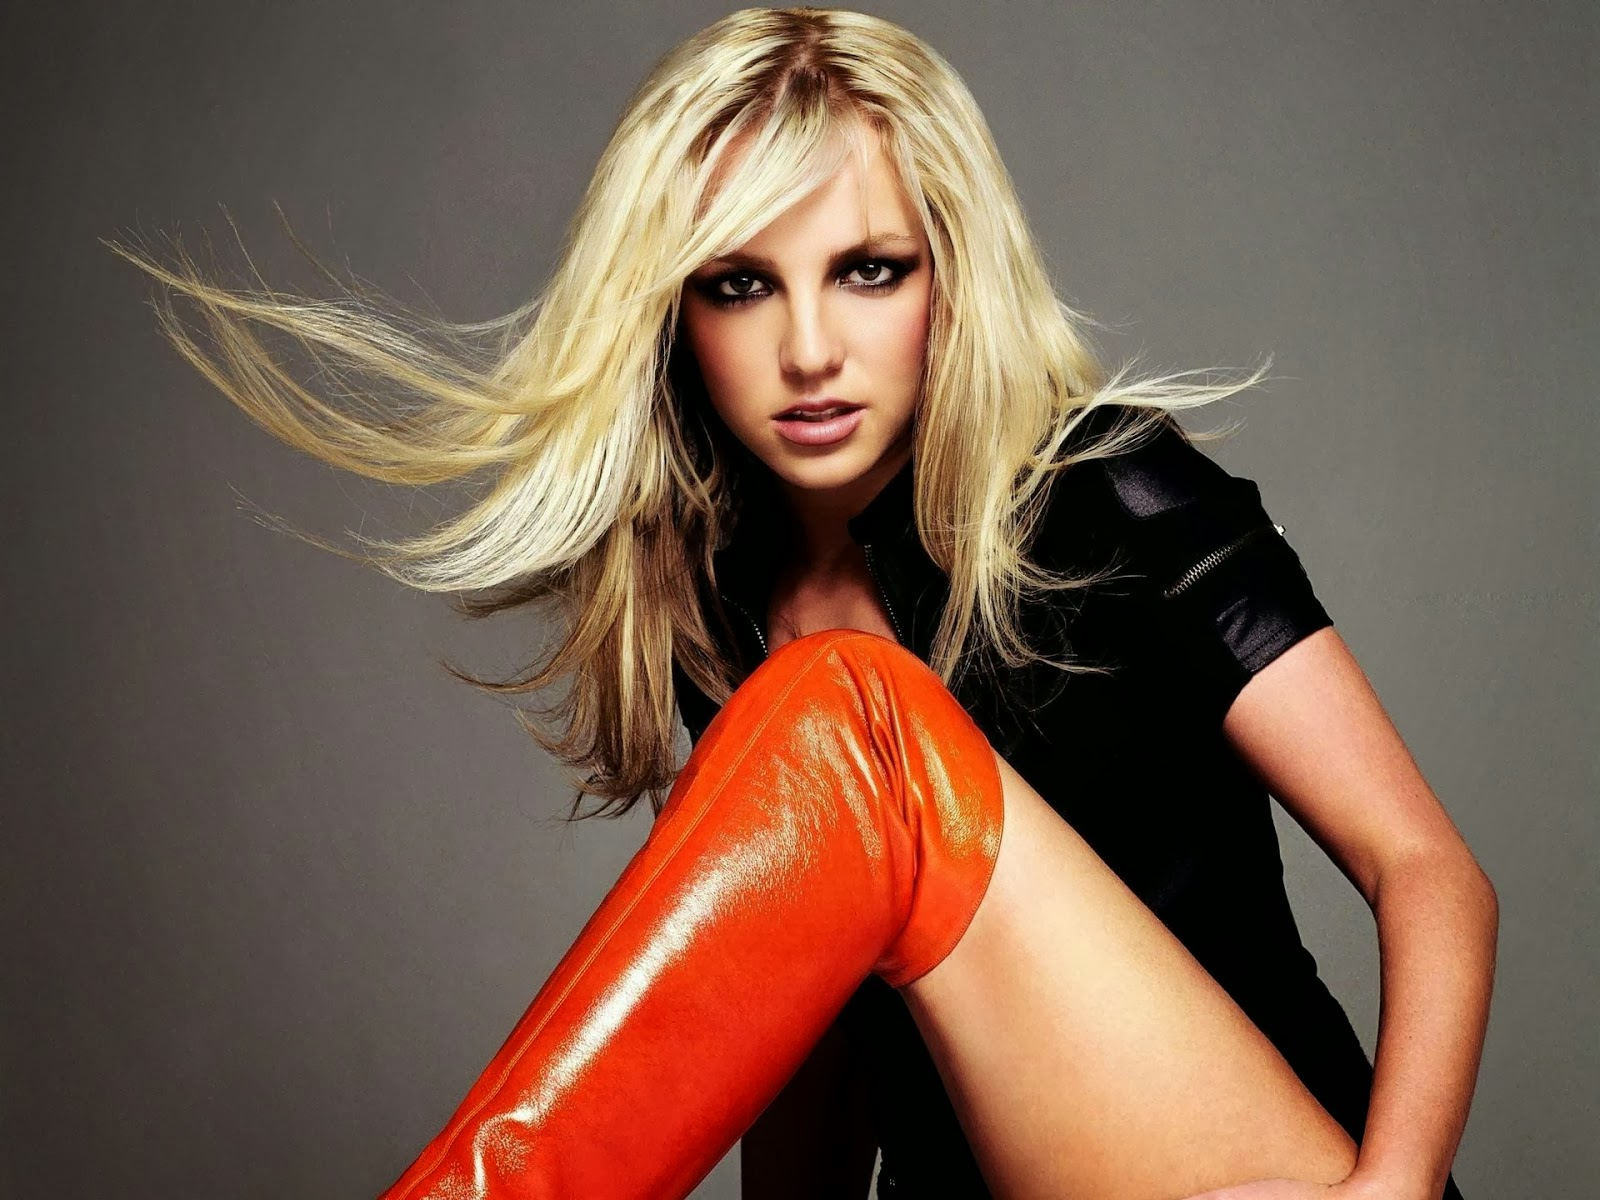 Britney+Spears+Hd+Wallpapers+Free+Download010